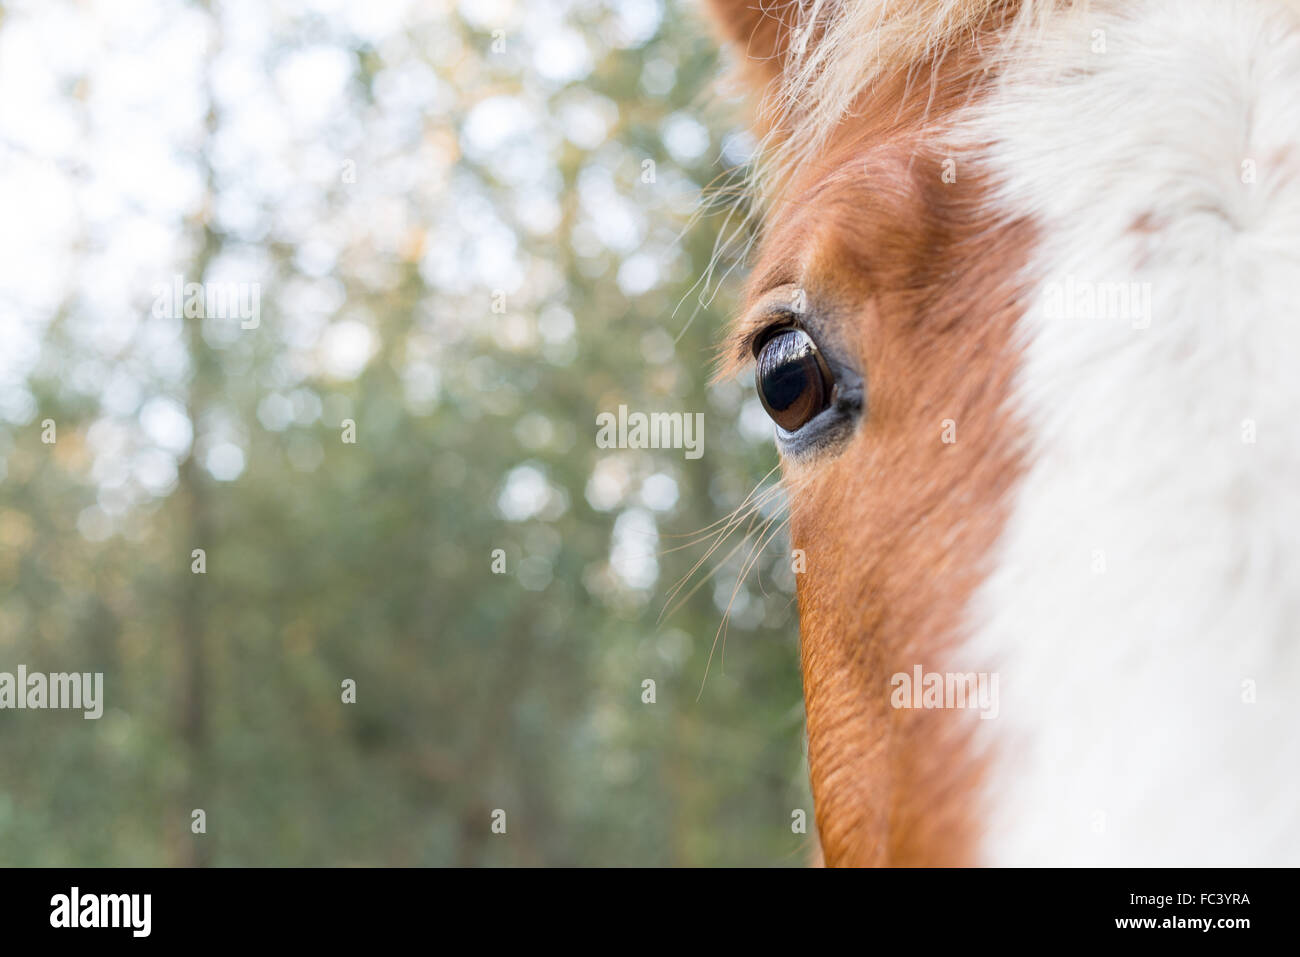 Keeping an eye on those nosy humans. A New Forest pony is inquisitive as I maneuver to take its photograph. - Stock Image